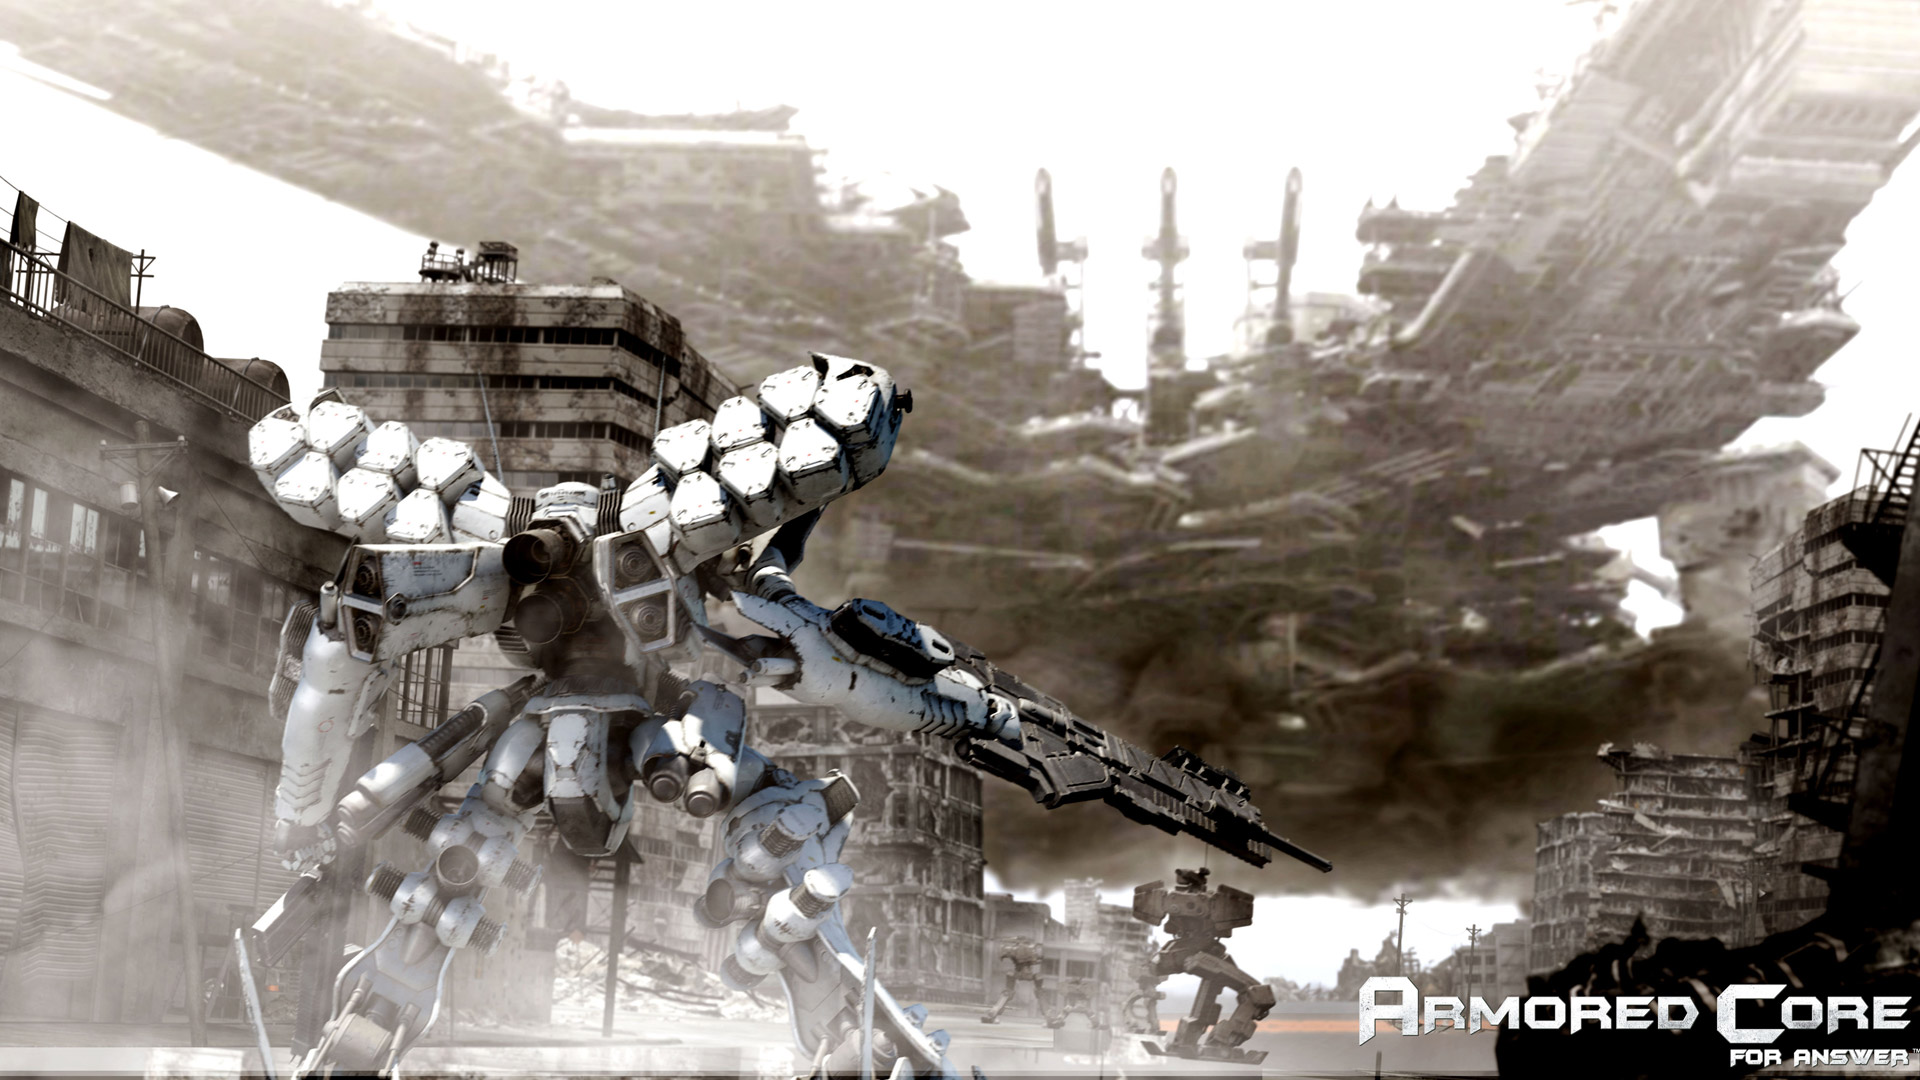 Free Armored Core: For Answer Wallpaper in 1920x1080